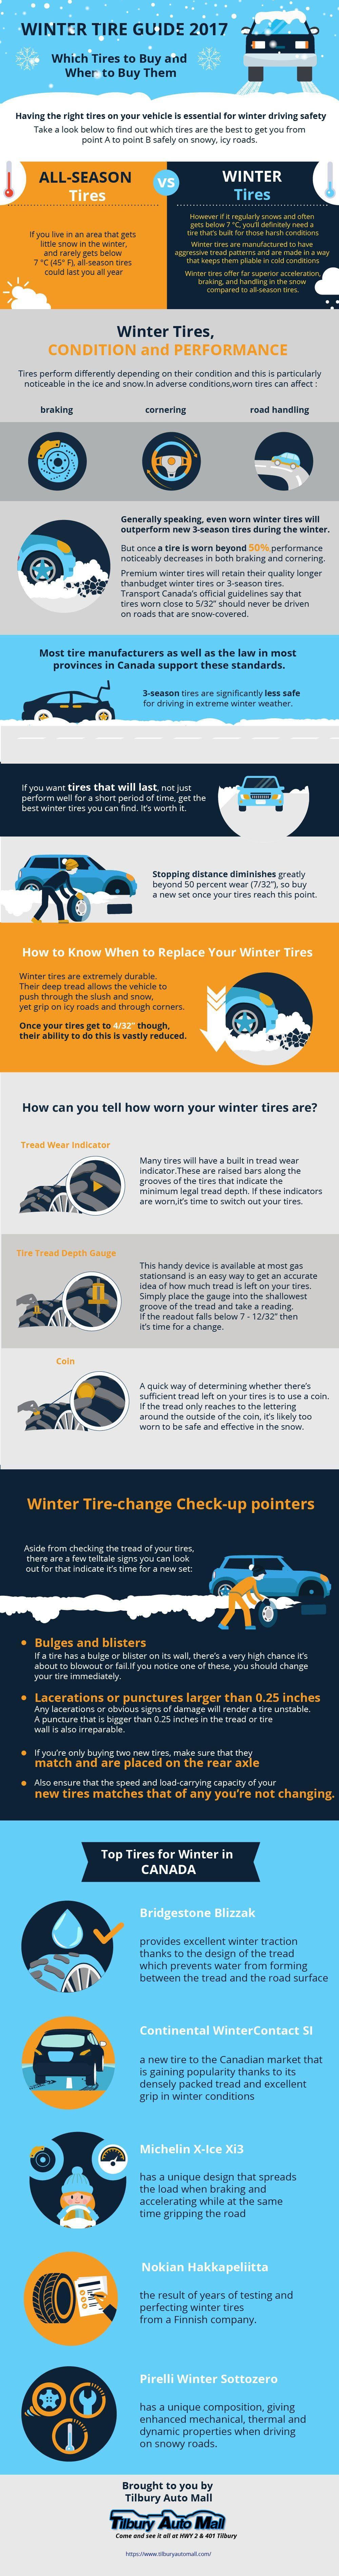 Winter Tire Buying Guide